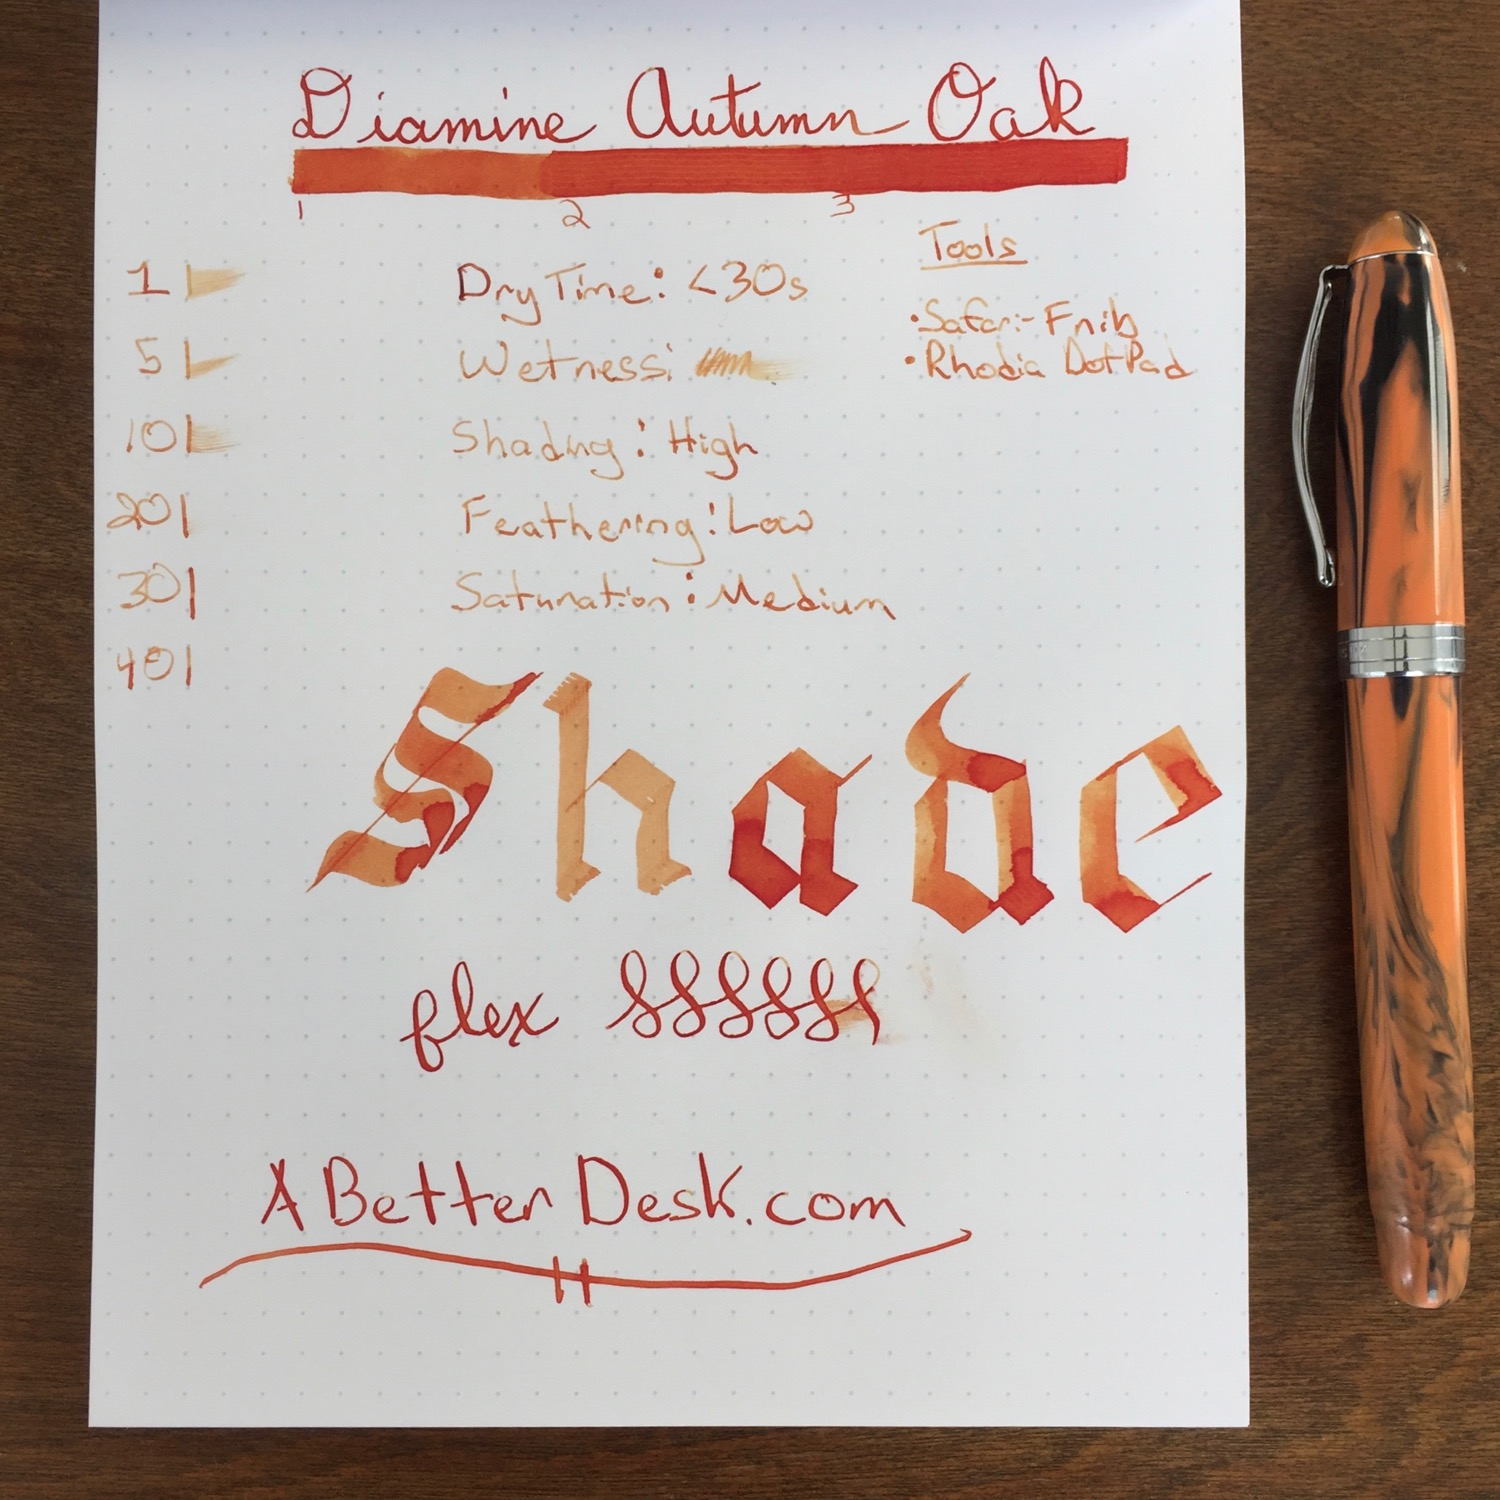 Here's the standard ink review, in case you want to compare with other ink reviews on the site.